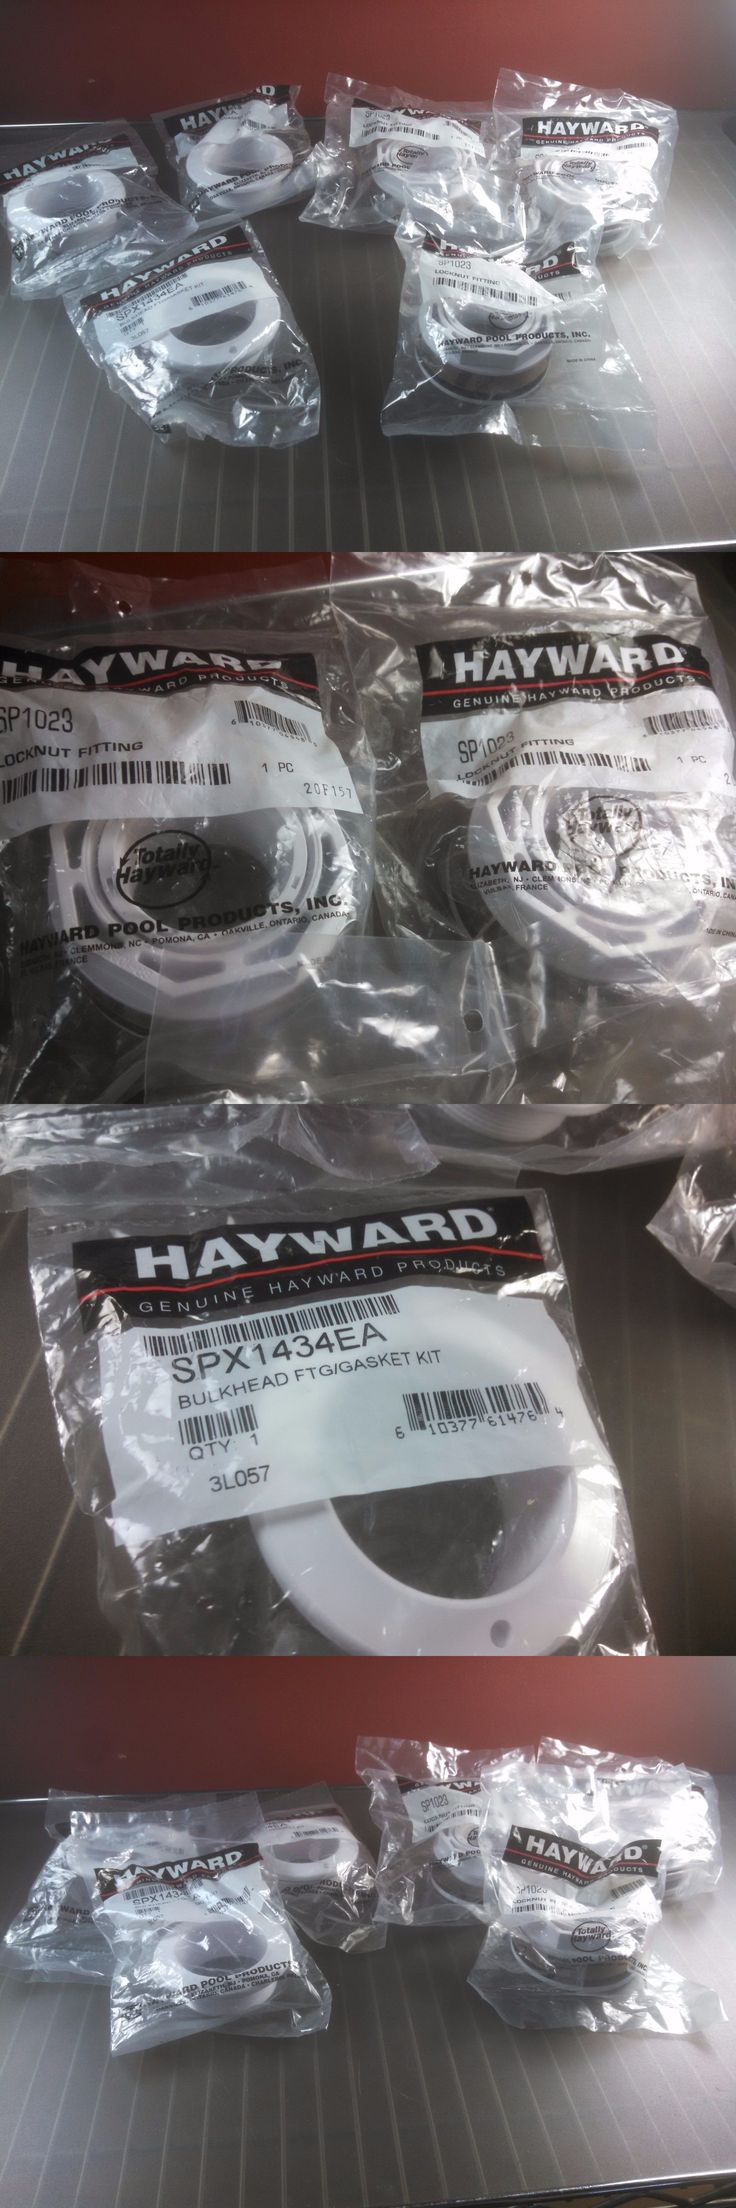 Spa and Hot Tub Parts 181075: Lot Of Hayward Pool And Spa Jet Air Iii Wall Fittings 3X Spx1434ea 3X Sp1023 -> BUY IT NOW ONLY: $31.49 on eBay!